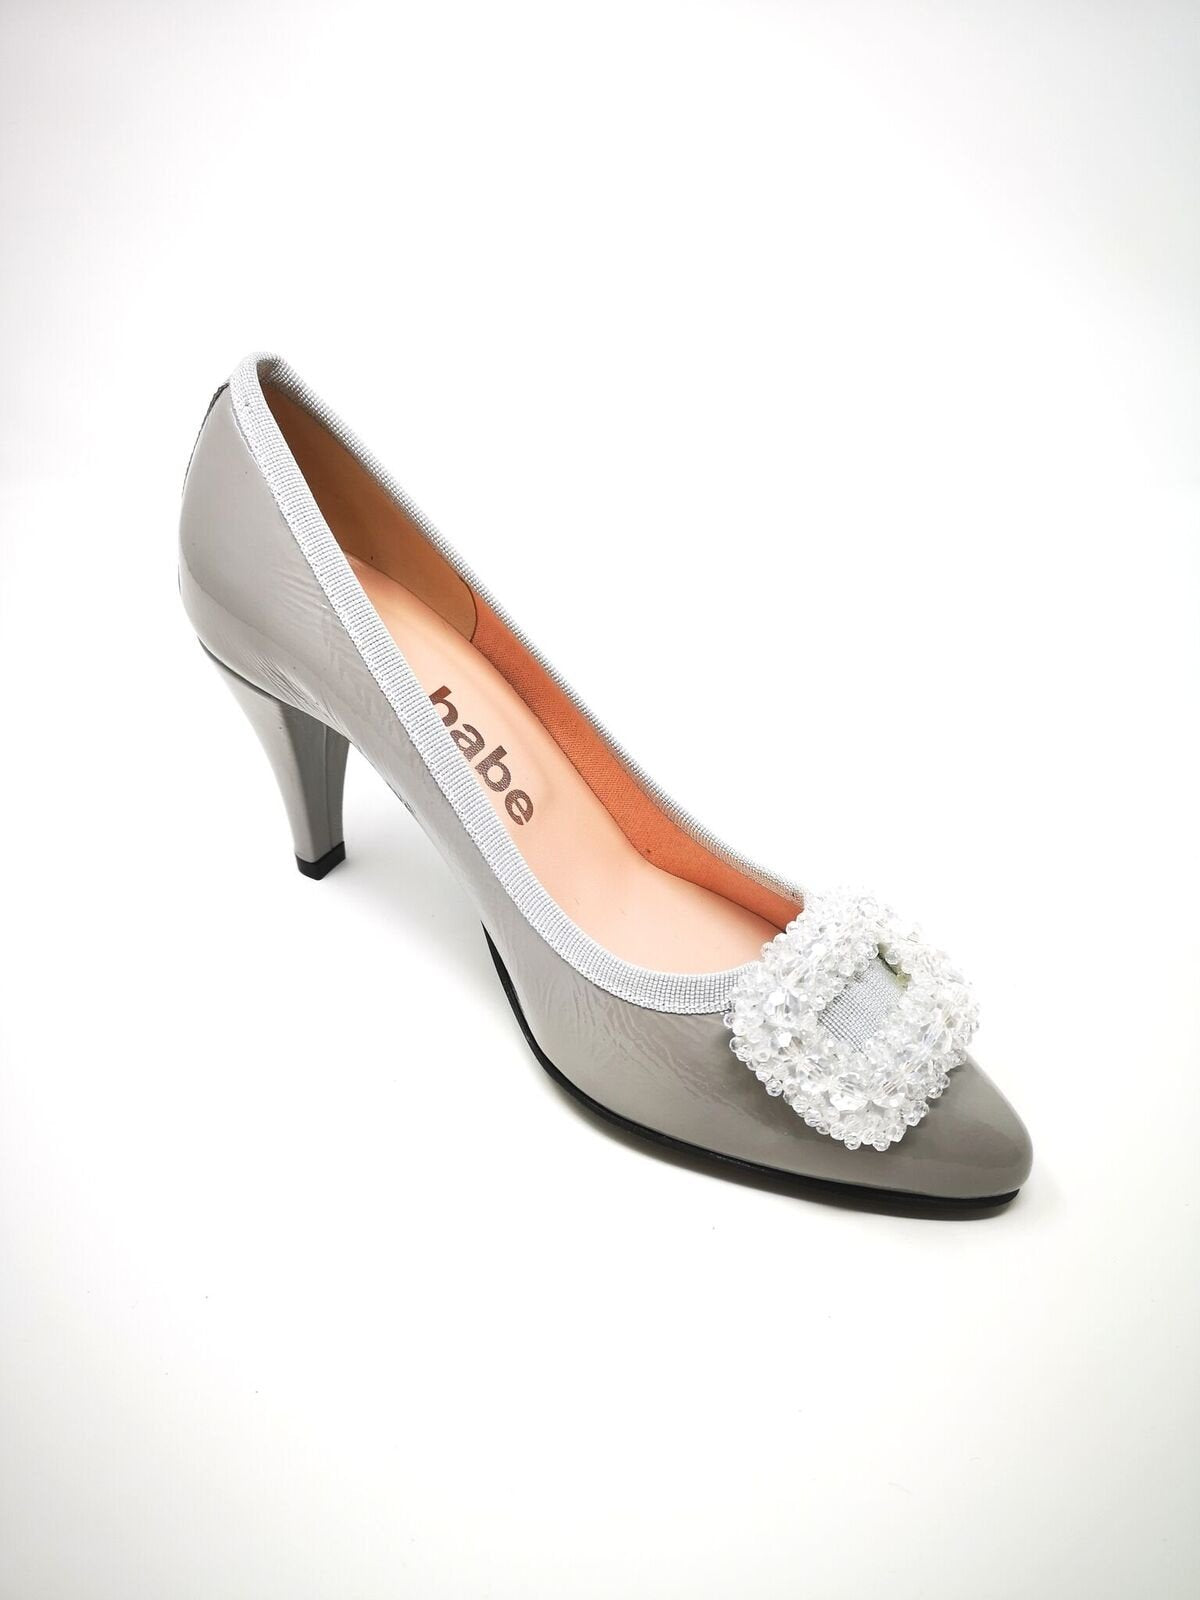 Patent High Heel With Sequin Detail On Toe